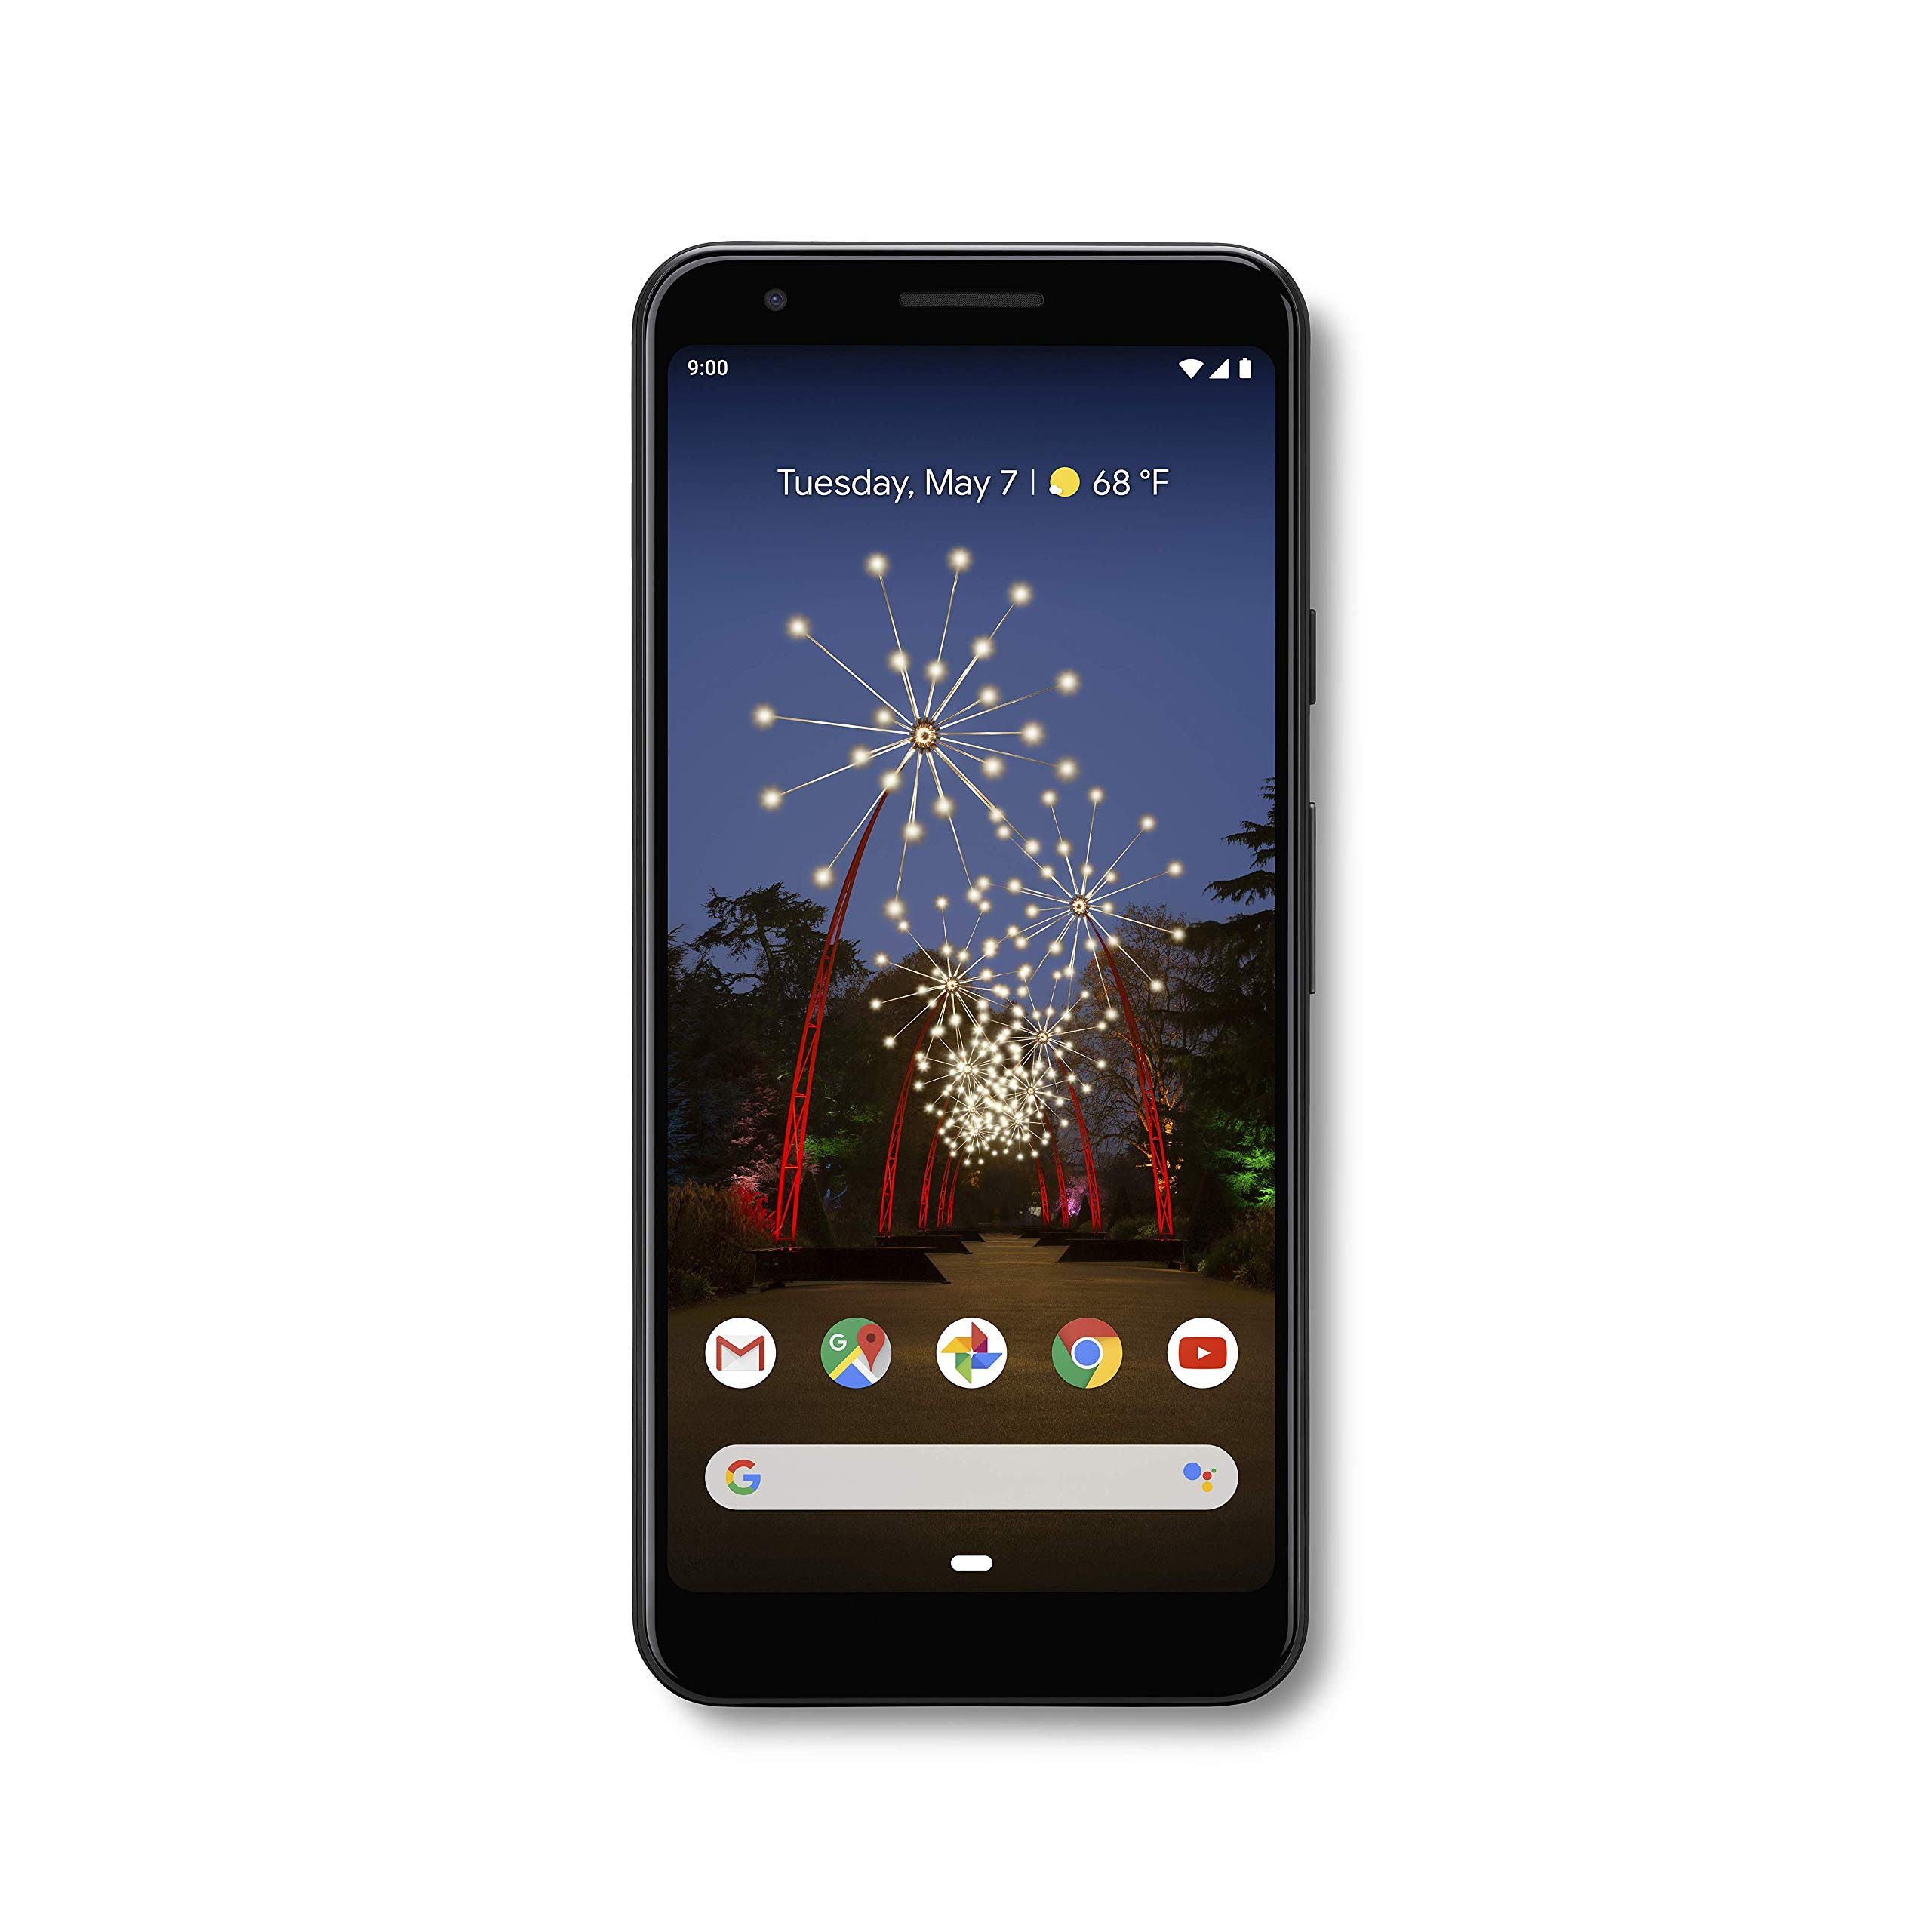 google-pixel-3a-with-64gb-memory-cell-phone-unlocked-just-black-g020g